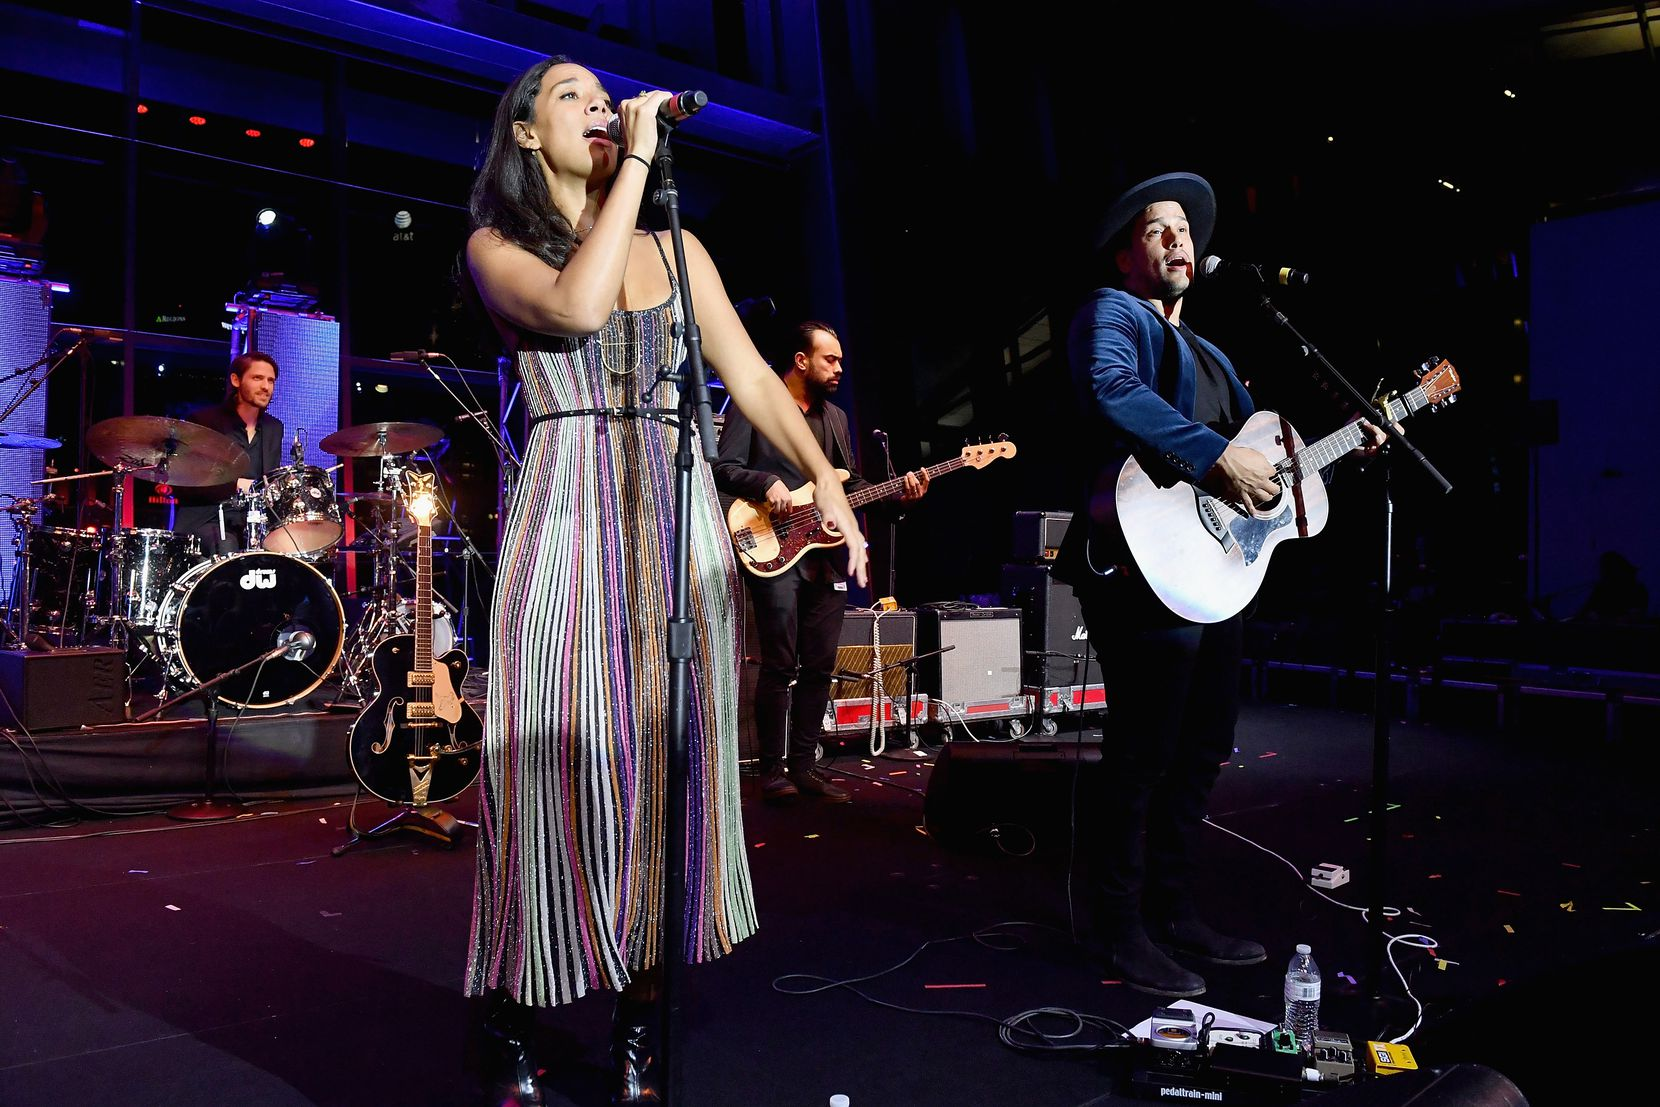 Amanda Sudano Ramirez and husband Abner Ramirez of the folk duo Johnnyswim performed onstage in Nashville in 2017.